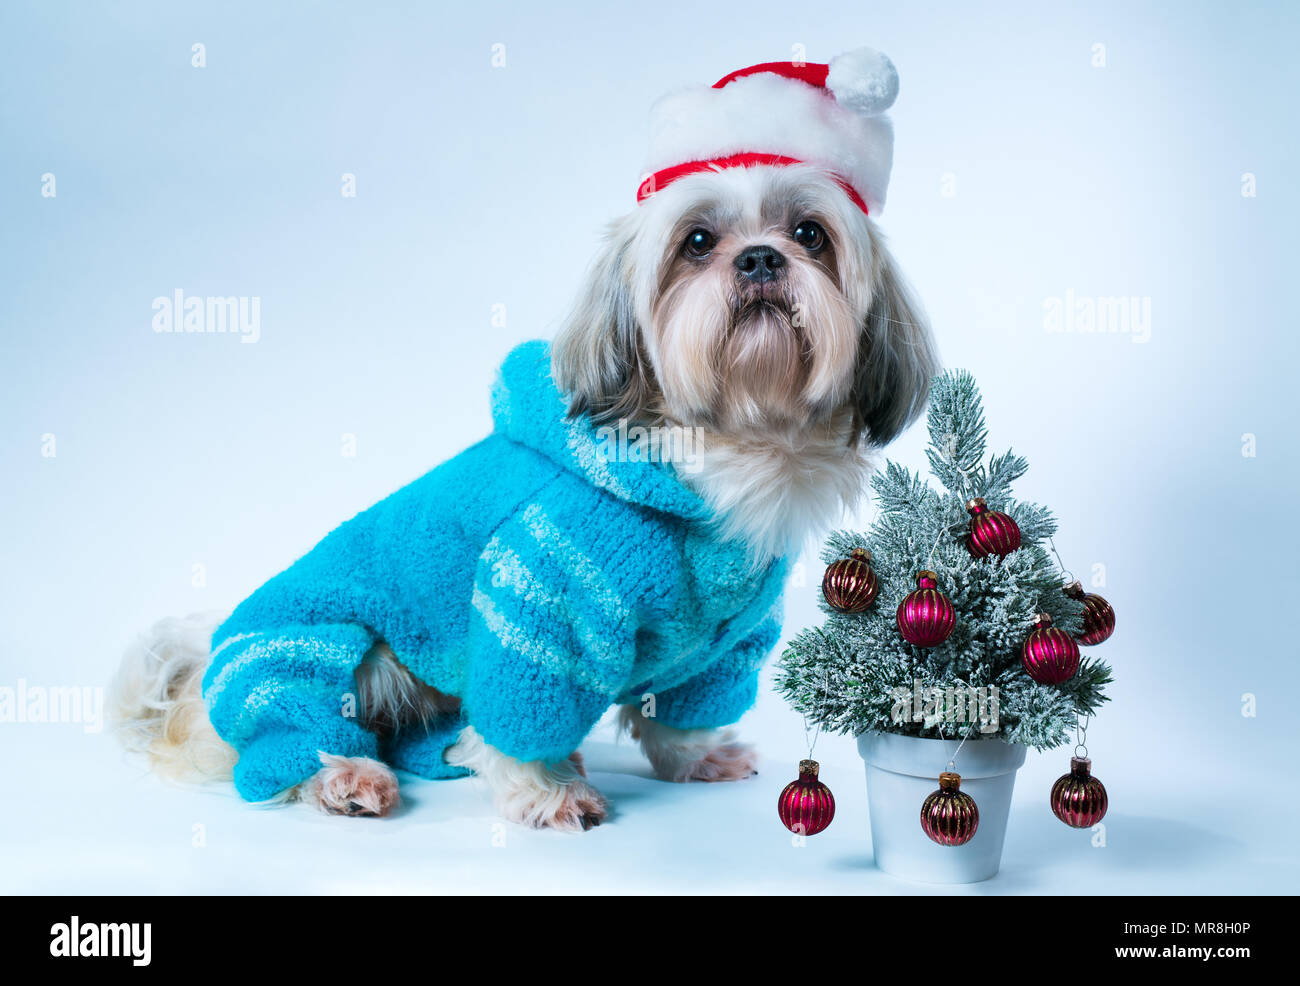 Shih Tzu Dog In Santa Hat And Blue Sweater With Small New Year Tree